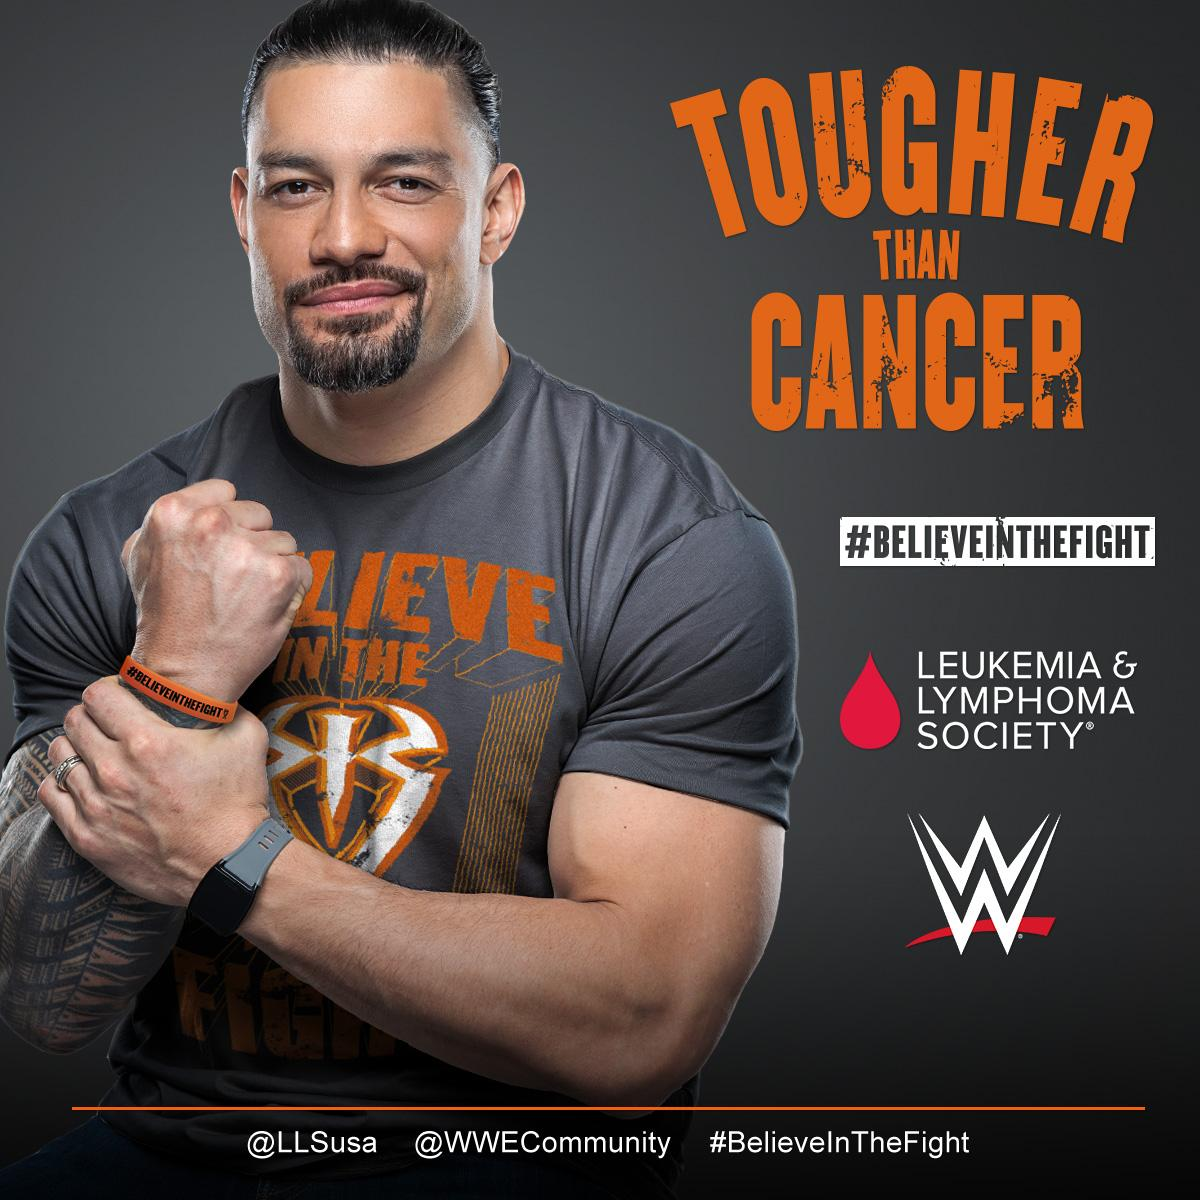 🗣 #BelieveInTheFight with the @WWERomanReigns #TougherThanCancer collection! Available at #WWEShop. #WWE